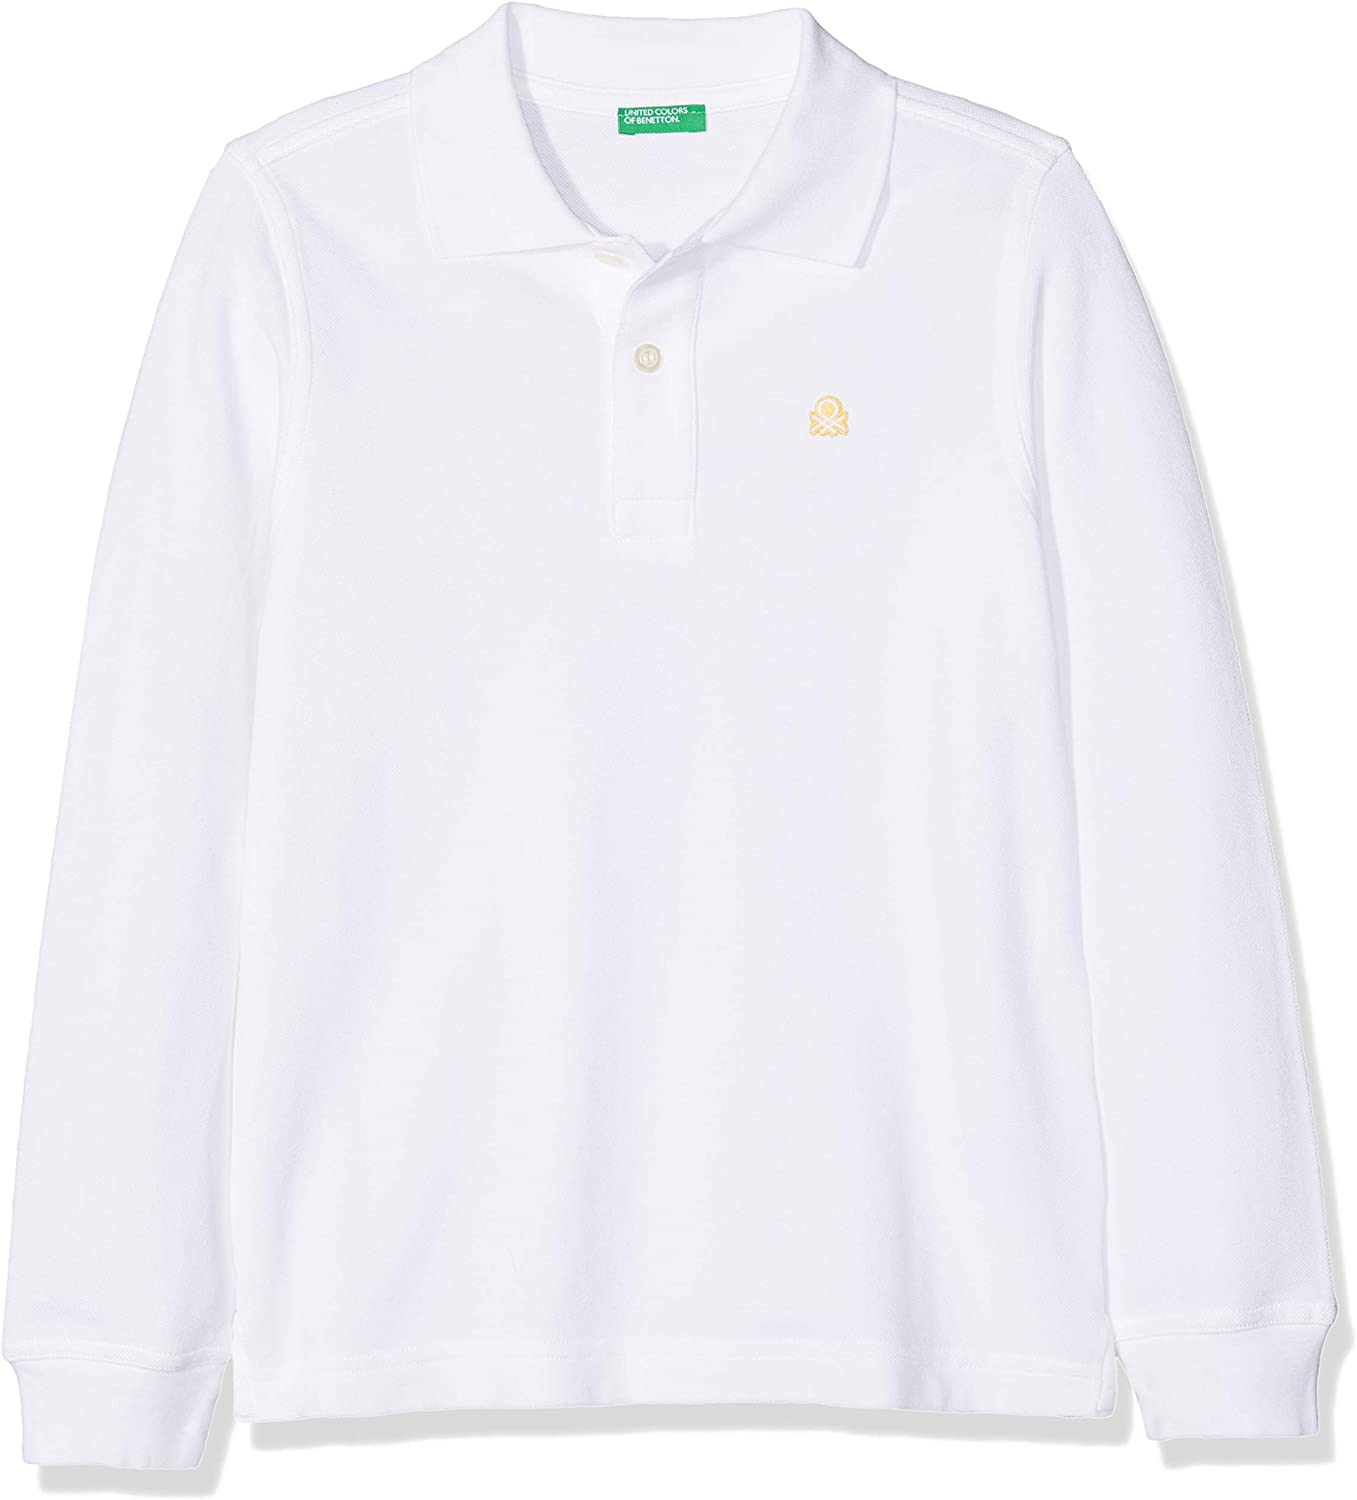 United Colors of Benetton L/s Polo Shirt, Niños, Blanco (White 101 ...